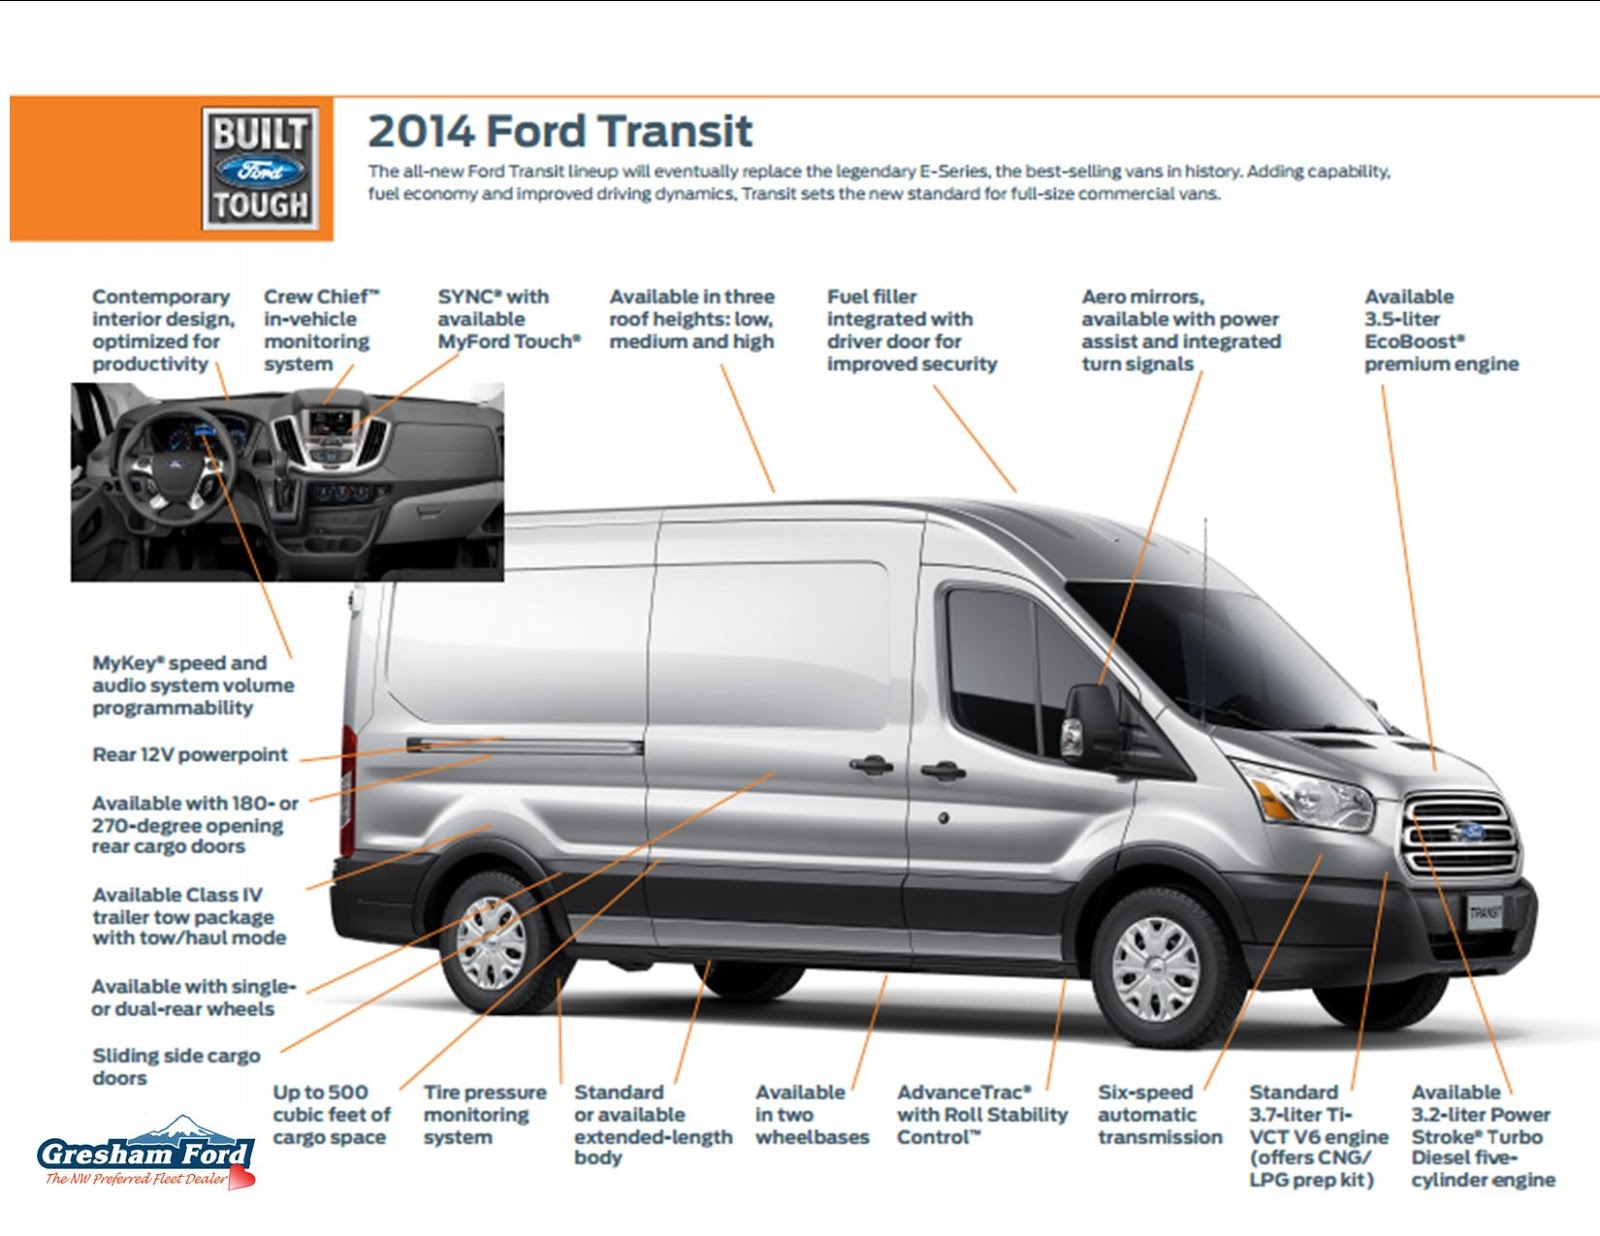 100 ideas Ford Transit Height on grifoniswcom